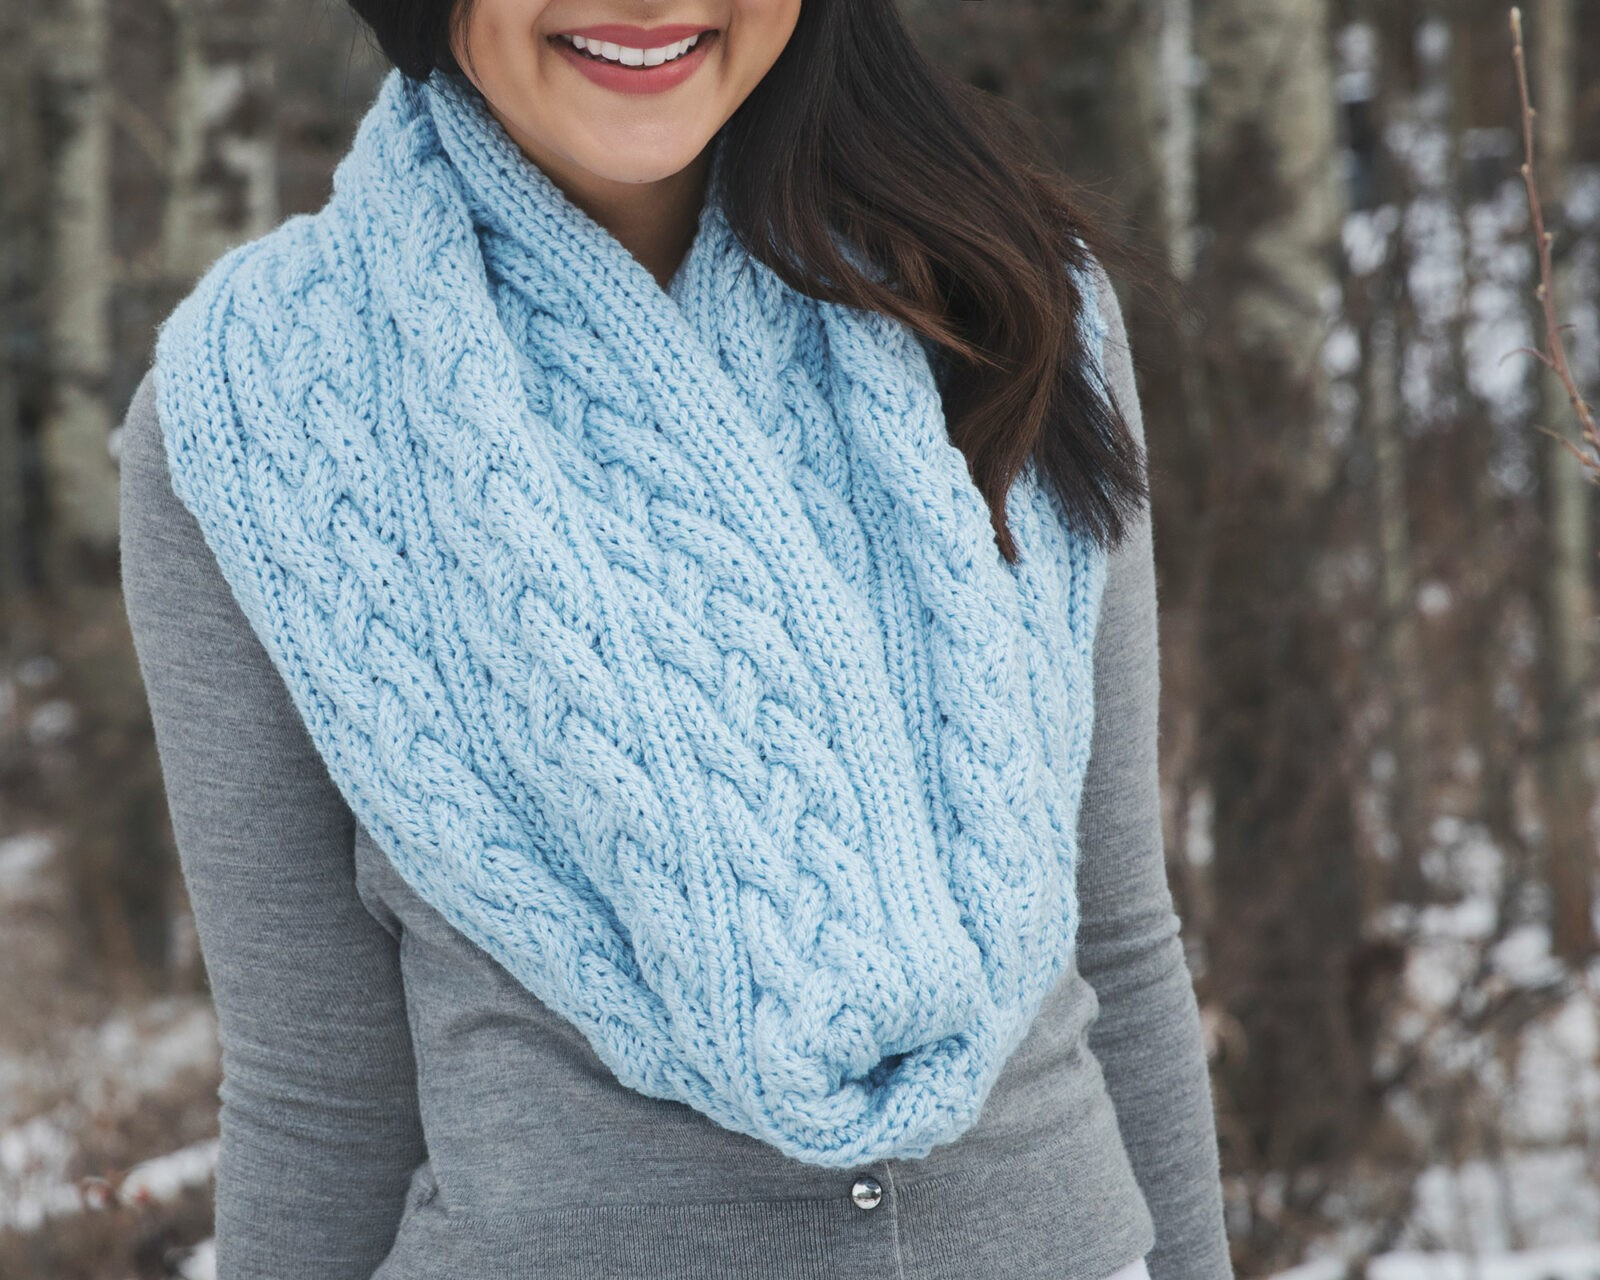 Knitting Pattern Infinity Scarf Straight Needles : Braided Cables Winter Scarf Knitting Pattern - Leelee KnitsLeelee Knits